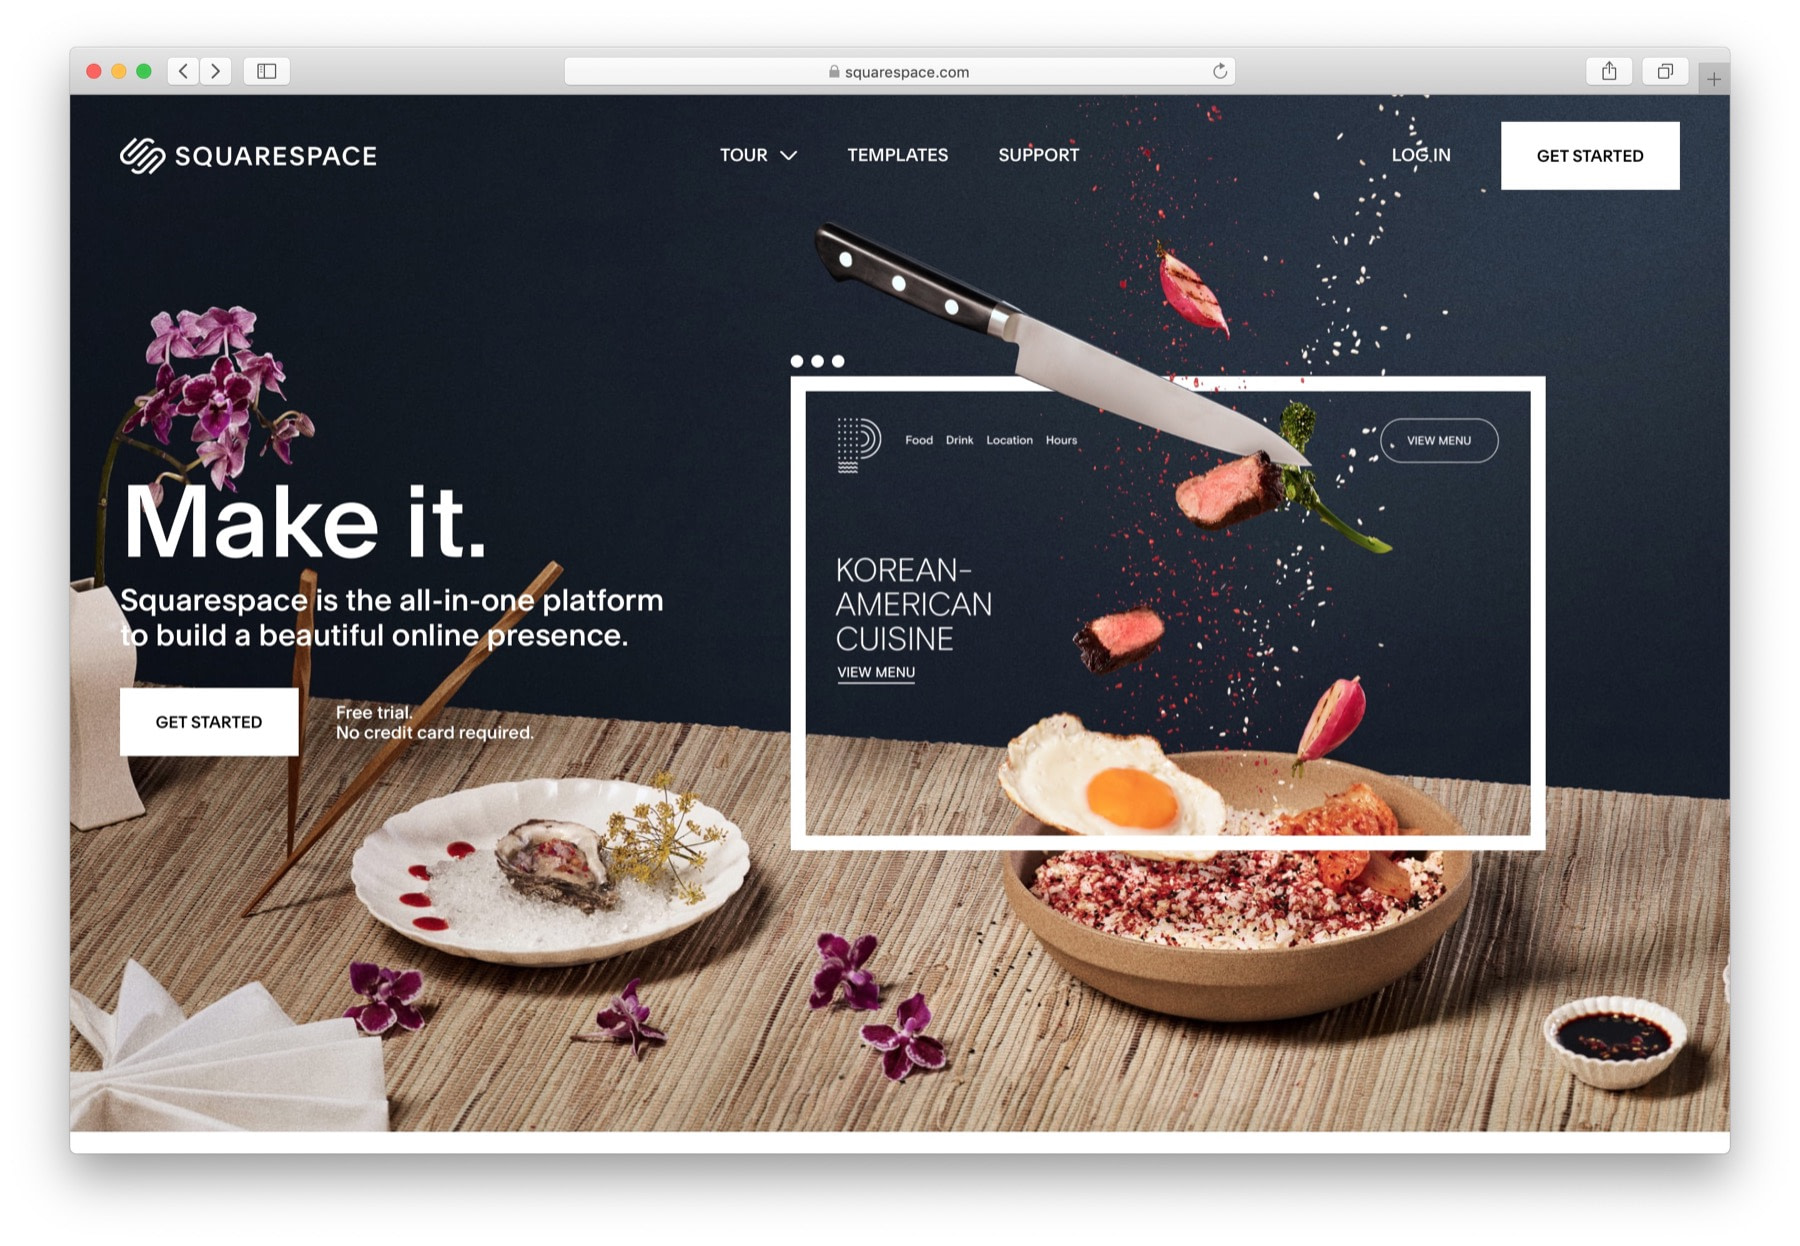 Best website builder for small business: #2 Squarespace